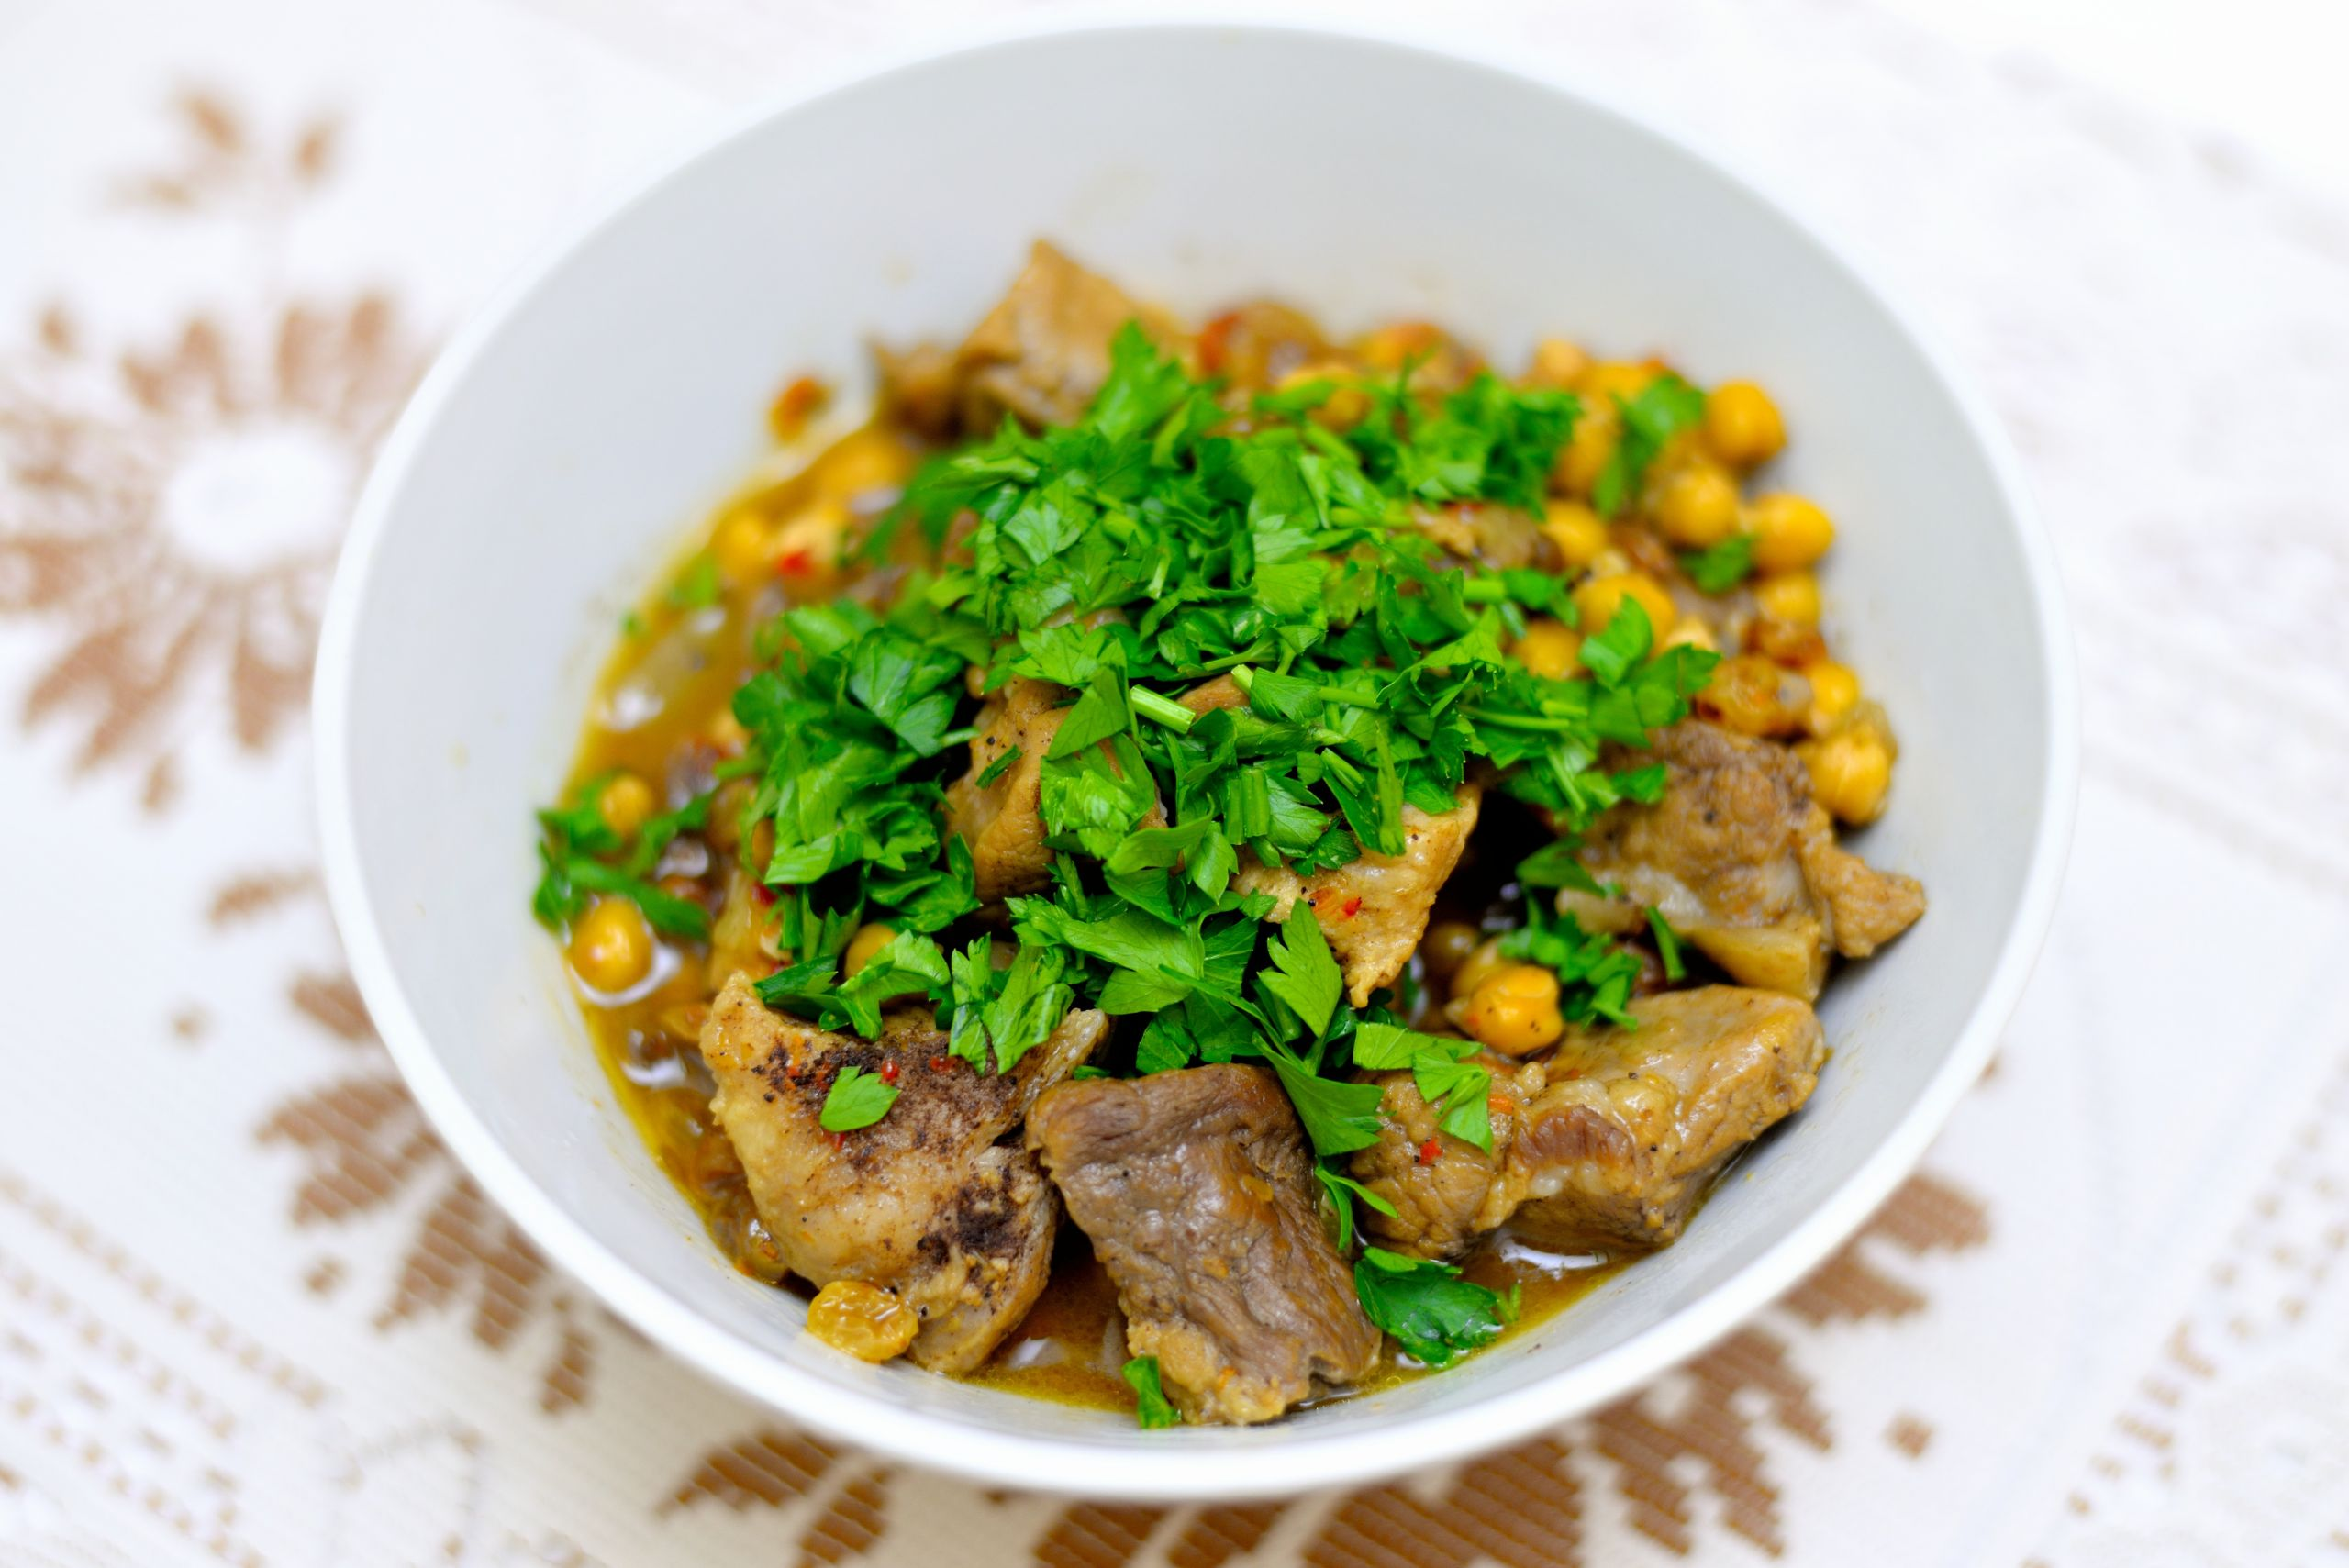 Middle East Lamb Stew  How to Make Middle Eastern Lamb Stew 10 Steps with